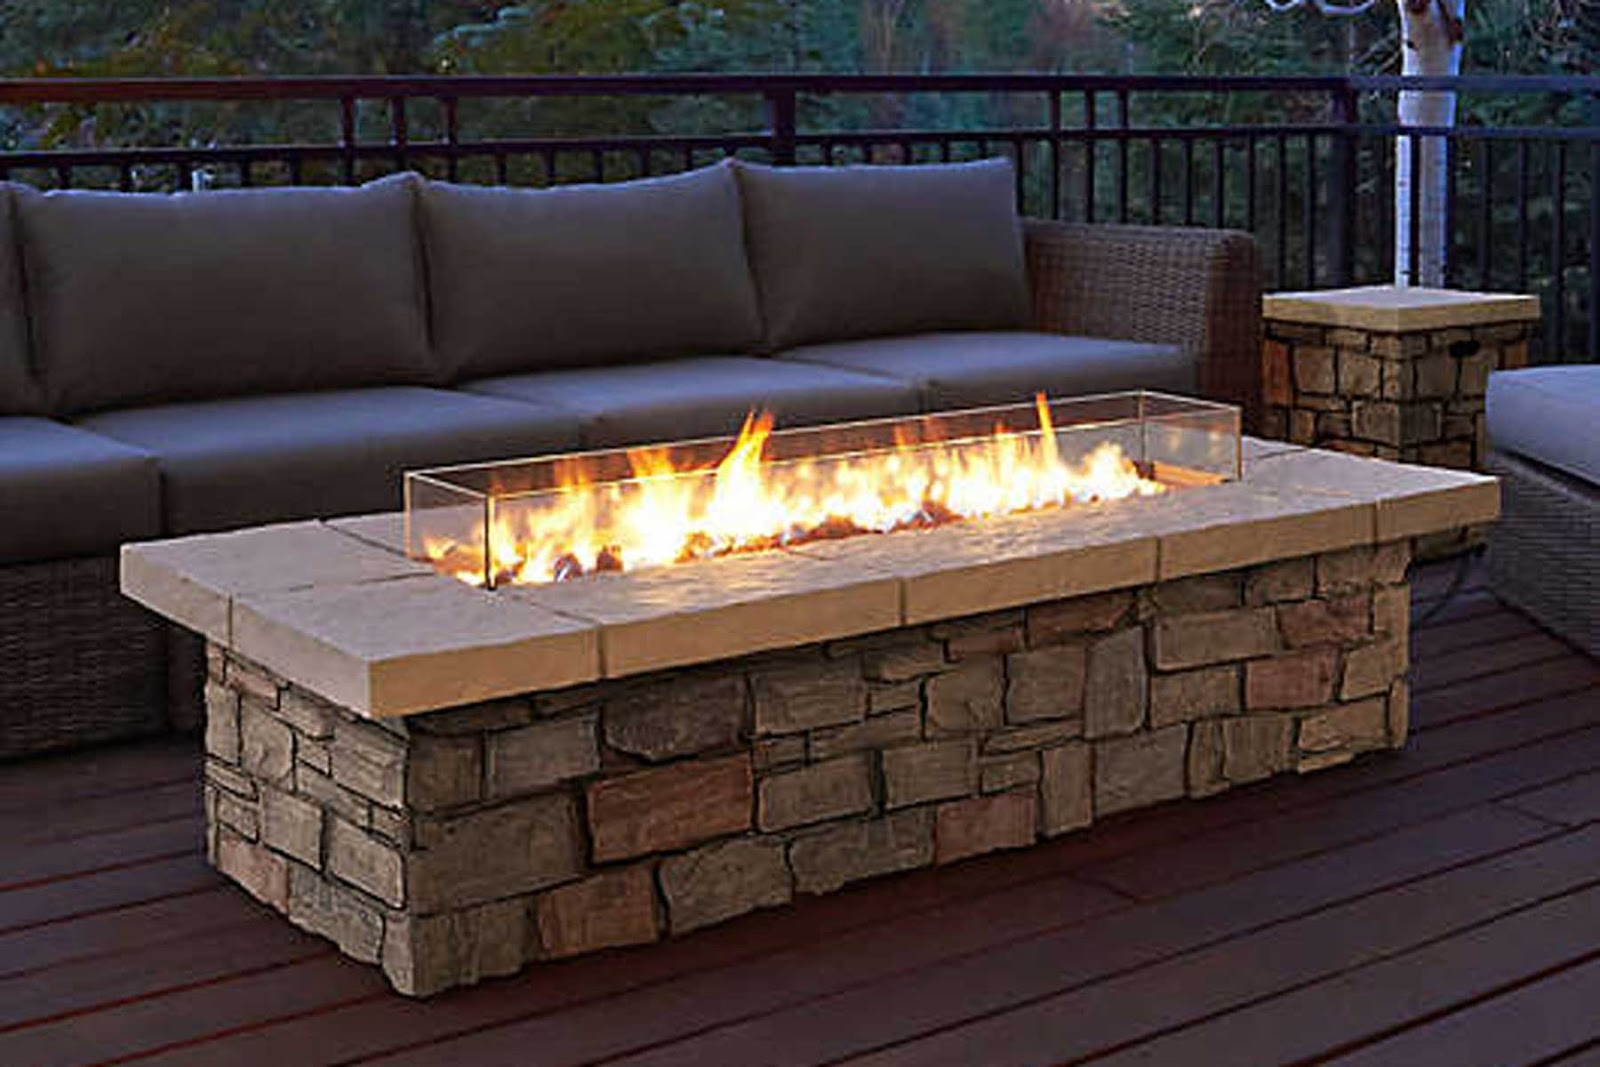 couch and stone rectangular fire-pit